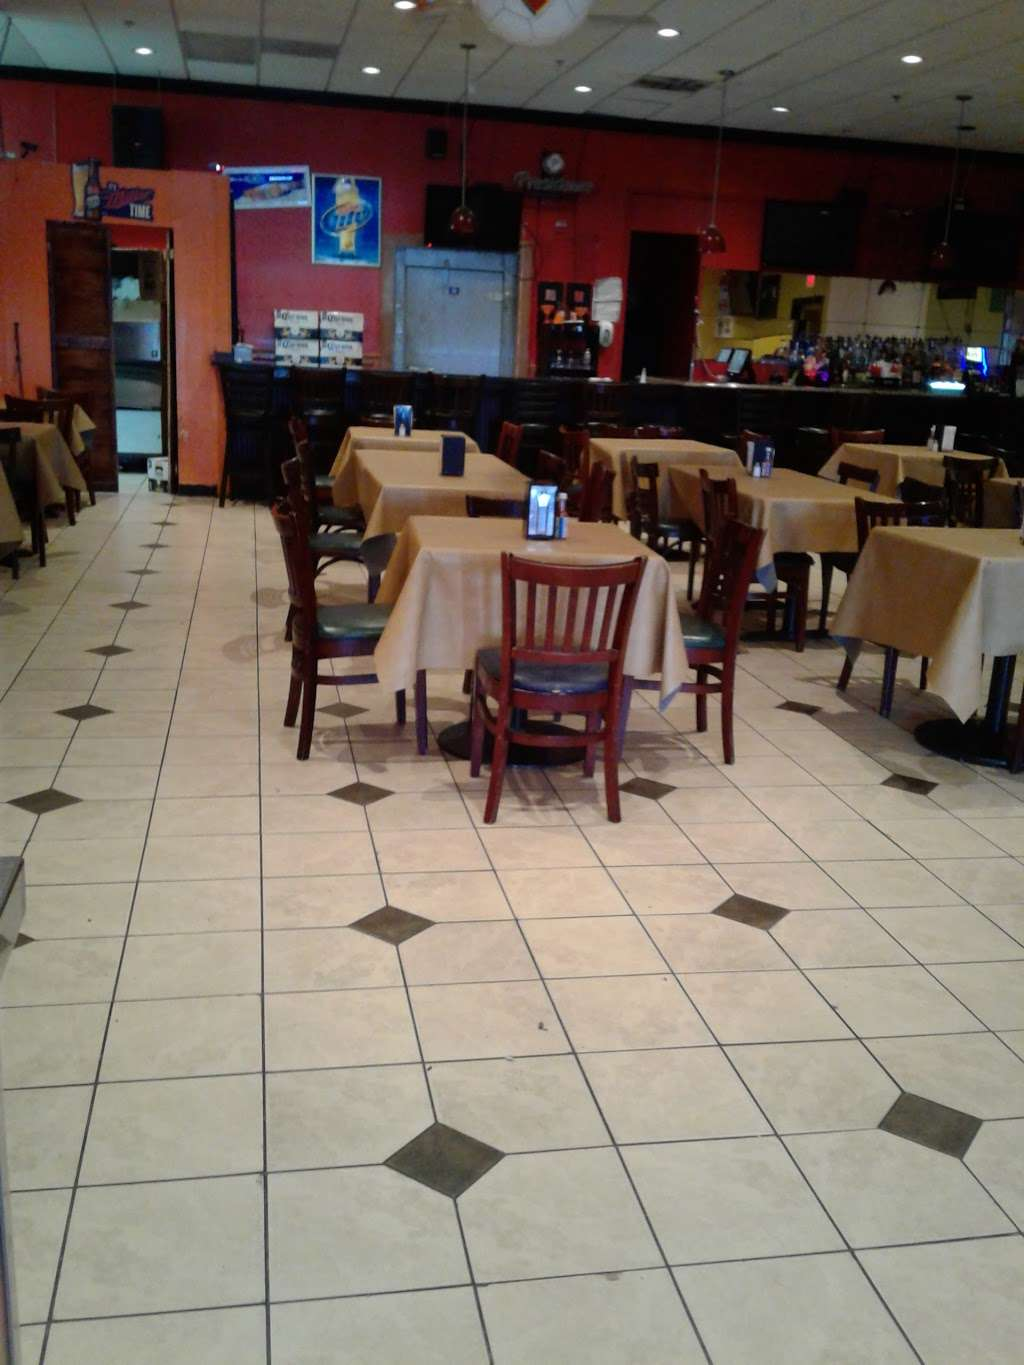 Galaxy Sports - restaurant  | Photo 9 of 10 | Address: 2031 University Blvd E, Lewisdale, MD 20782, USA | Phone: (301) 439-6666